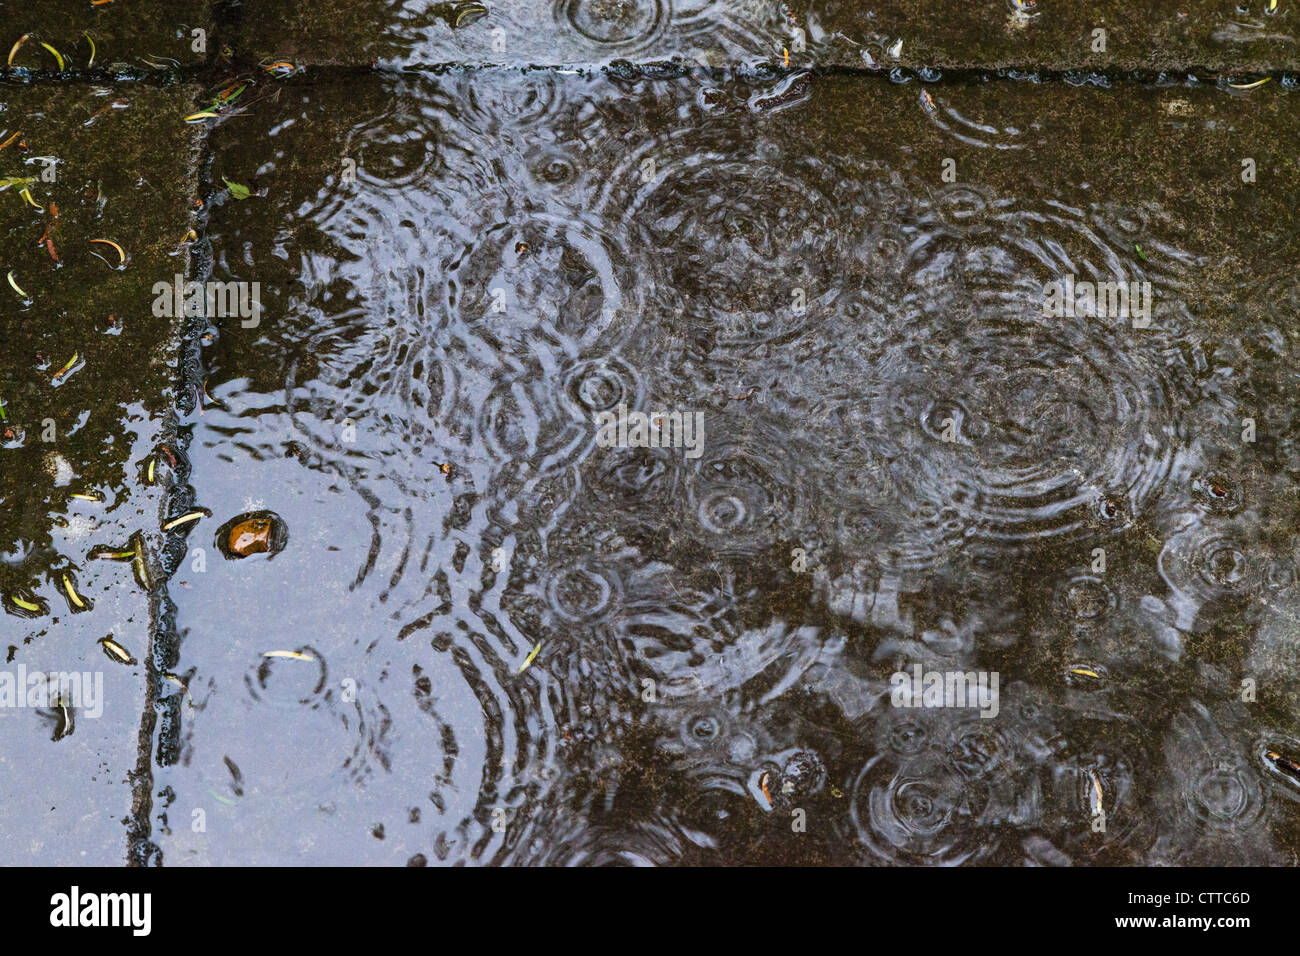 Heavy raindrops falling on paving stones in garden, causing ripples in June garden UK. - Stock Image